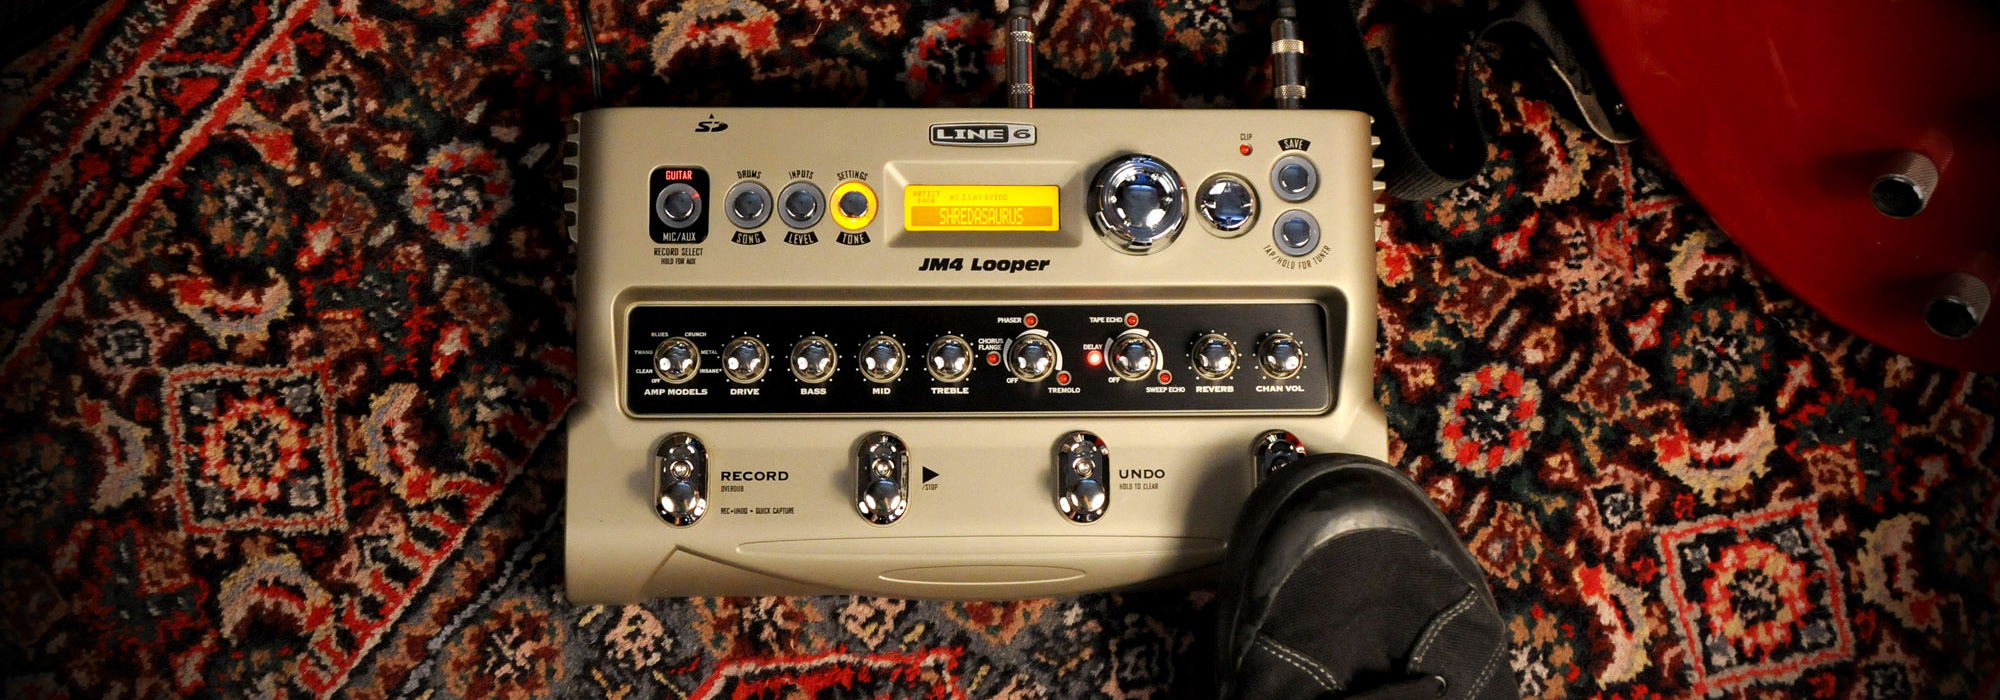 ... collection of brilliant modern and historic guitar tones, JM4 Looper  gives you access to 200+ artist-created presets, 150+ song-based presets,  12 Line 6 ...